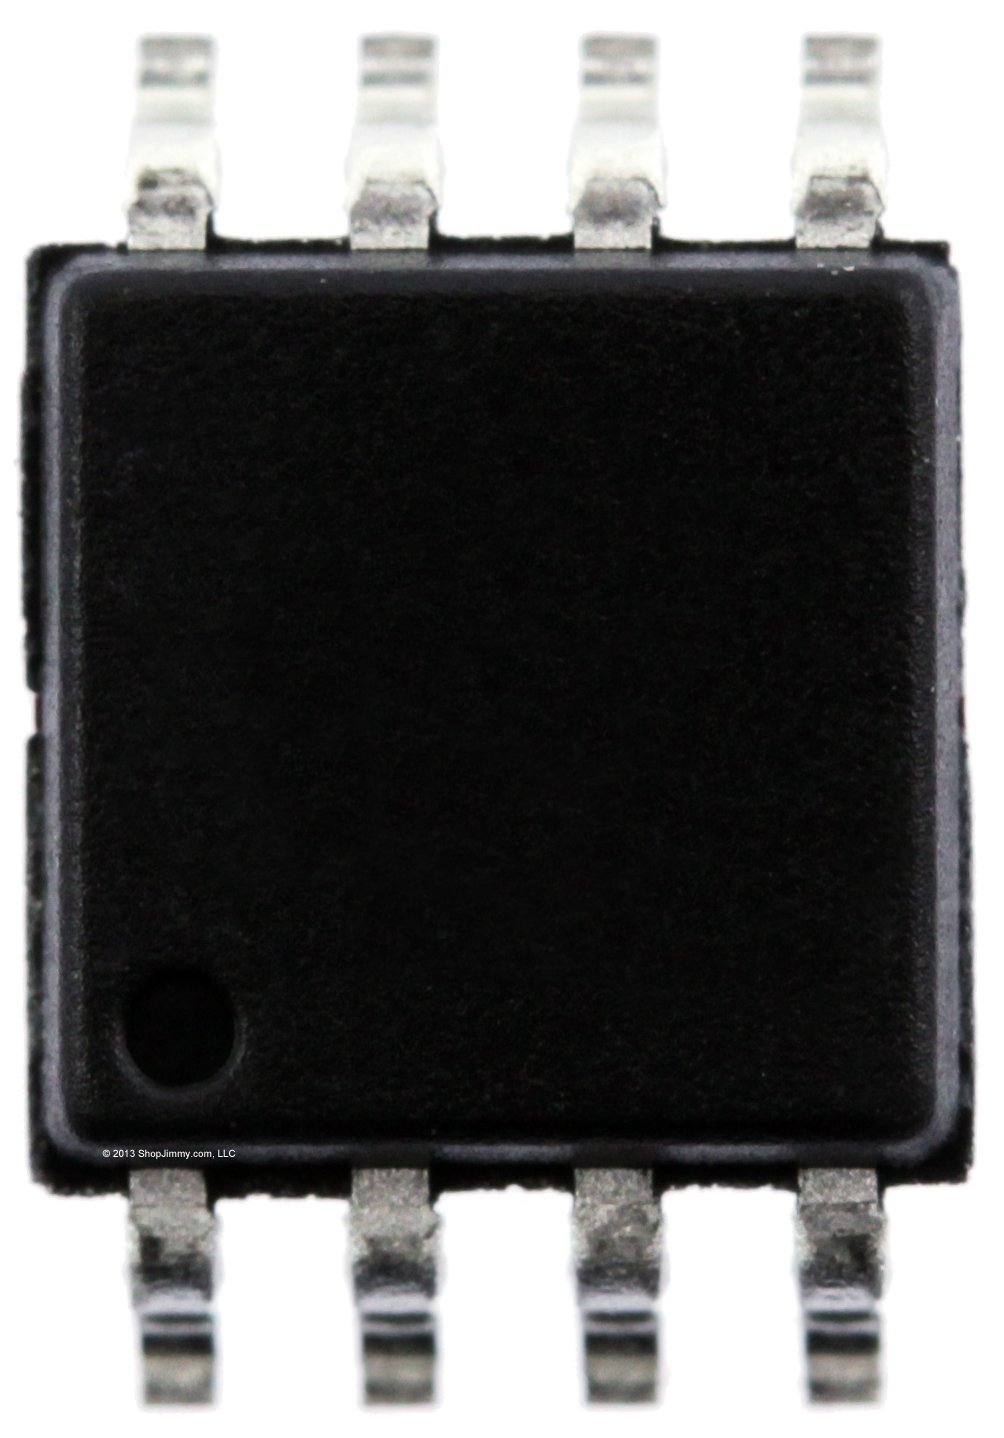 Haier 32D2000E DH1TK4M0104M Main Board UF1 EEPROM Only